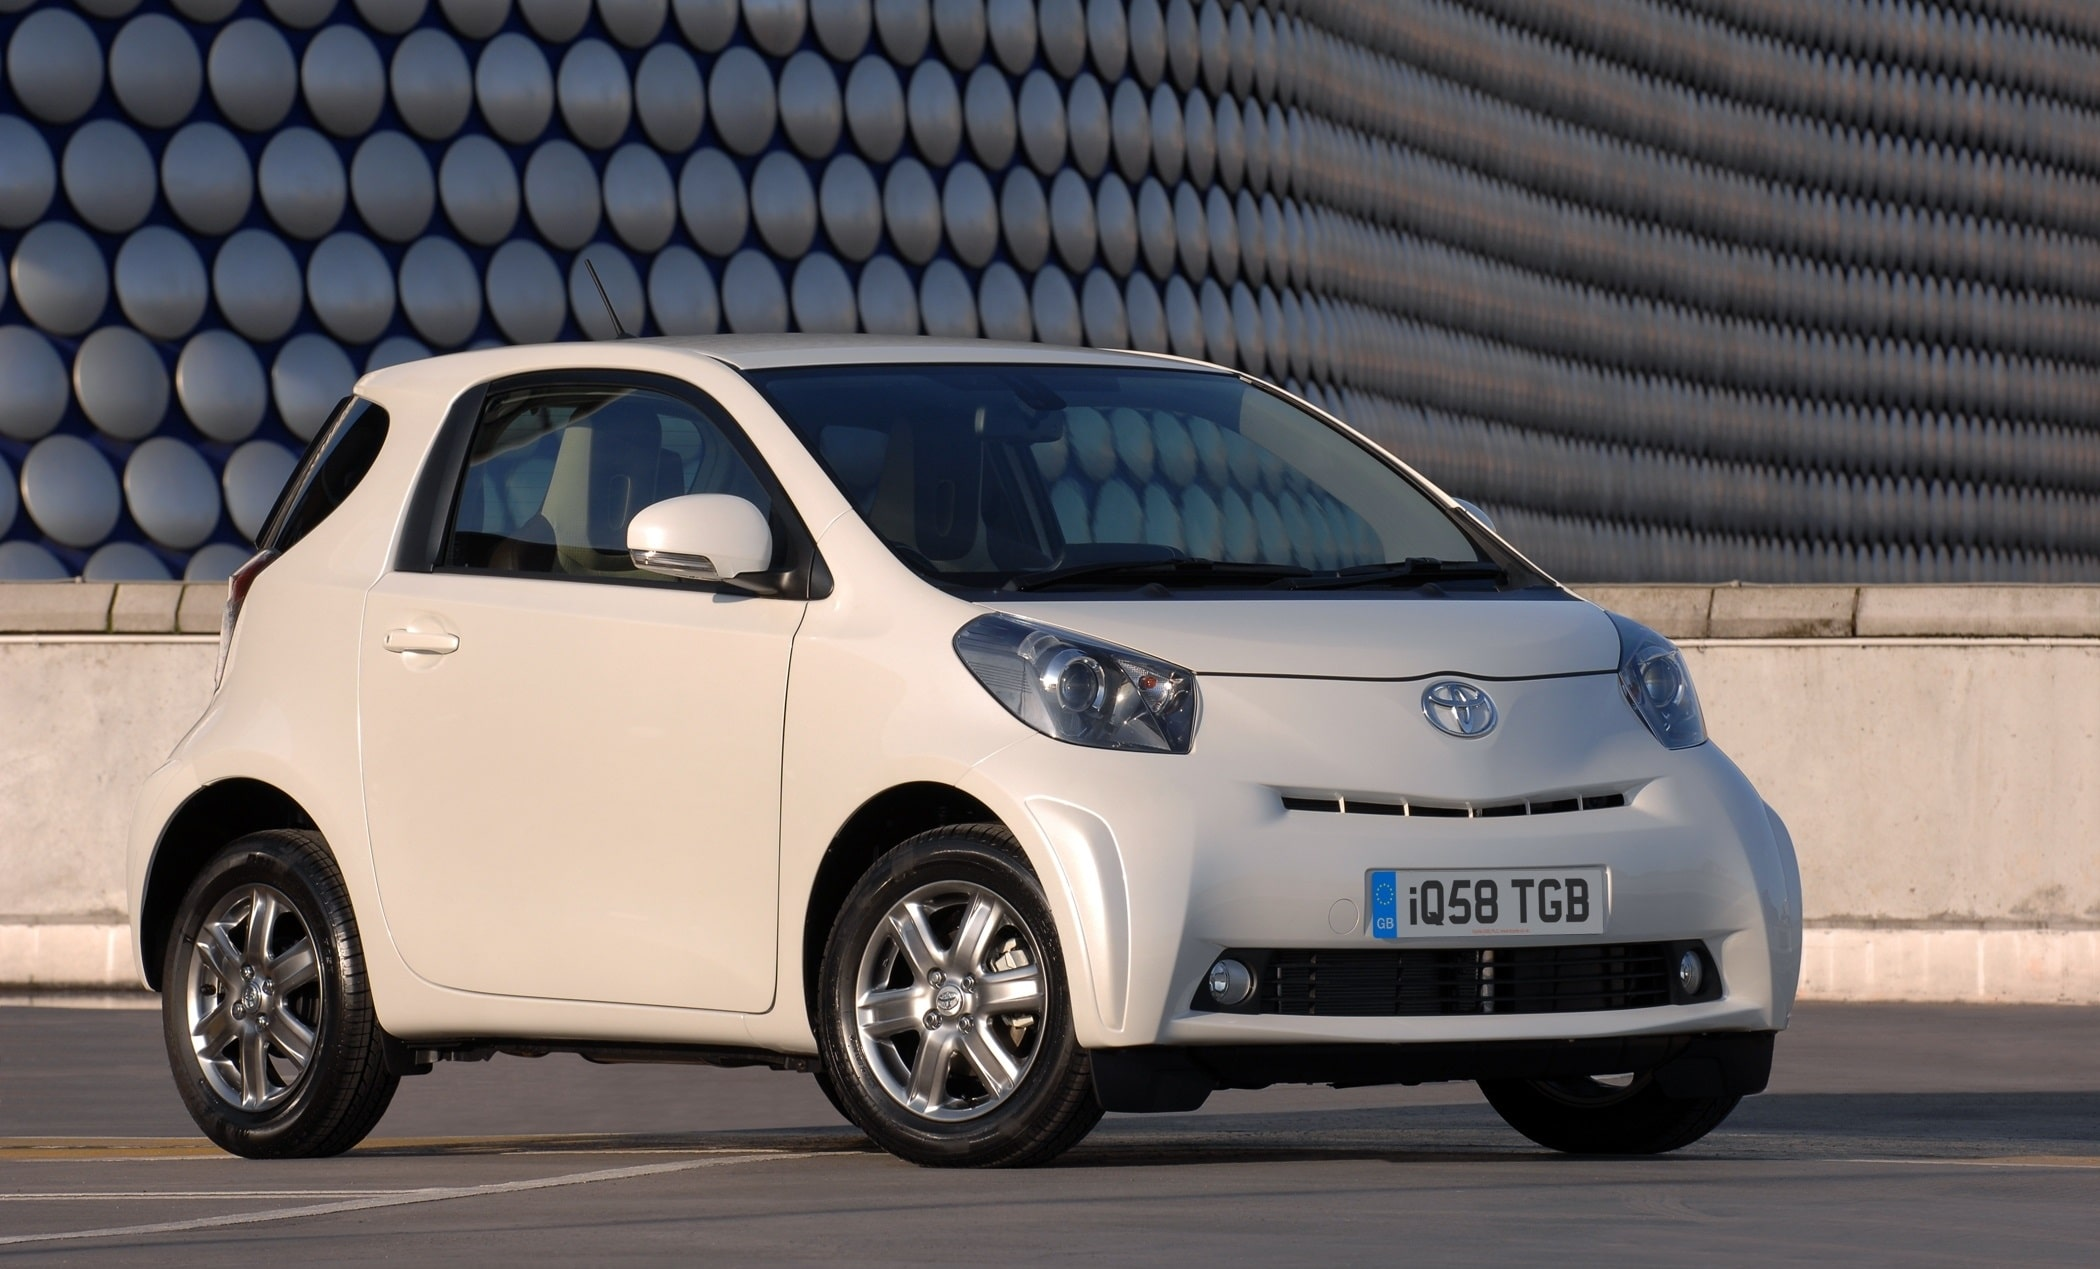 Toyota IQ, Toyota, IQ, small car, Japanese car, hatchback, city car, motoring, automotive, car, cars, bargain car, urban car